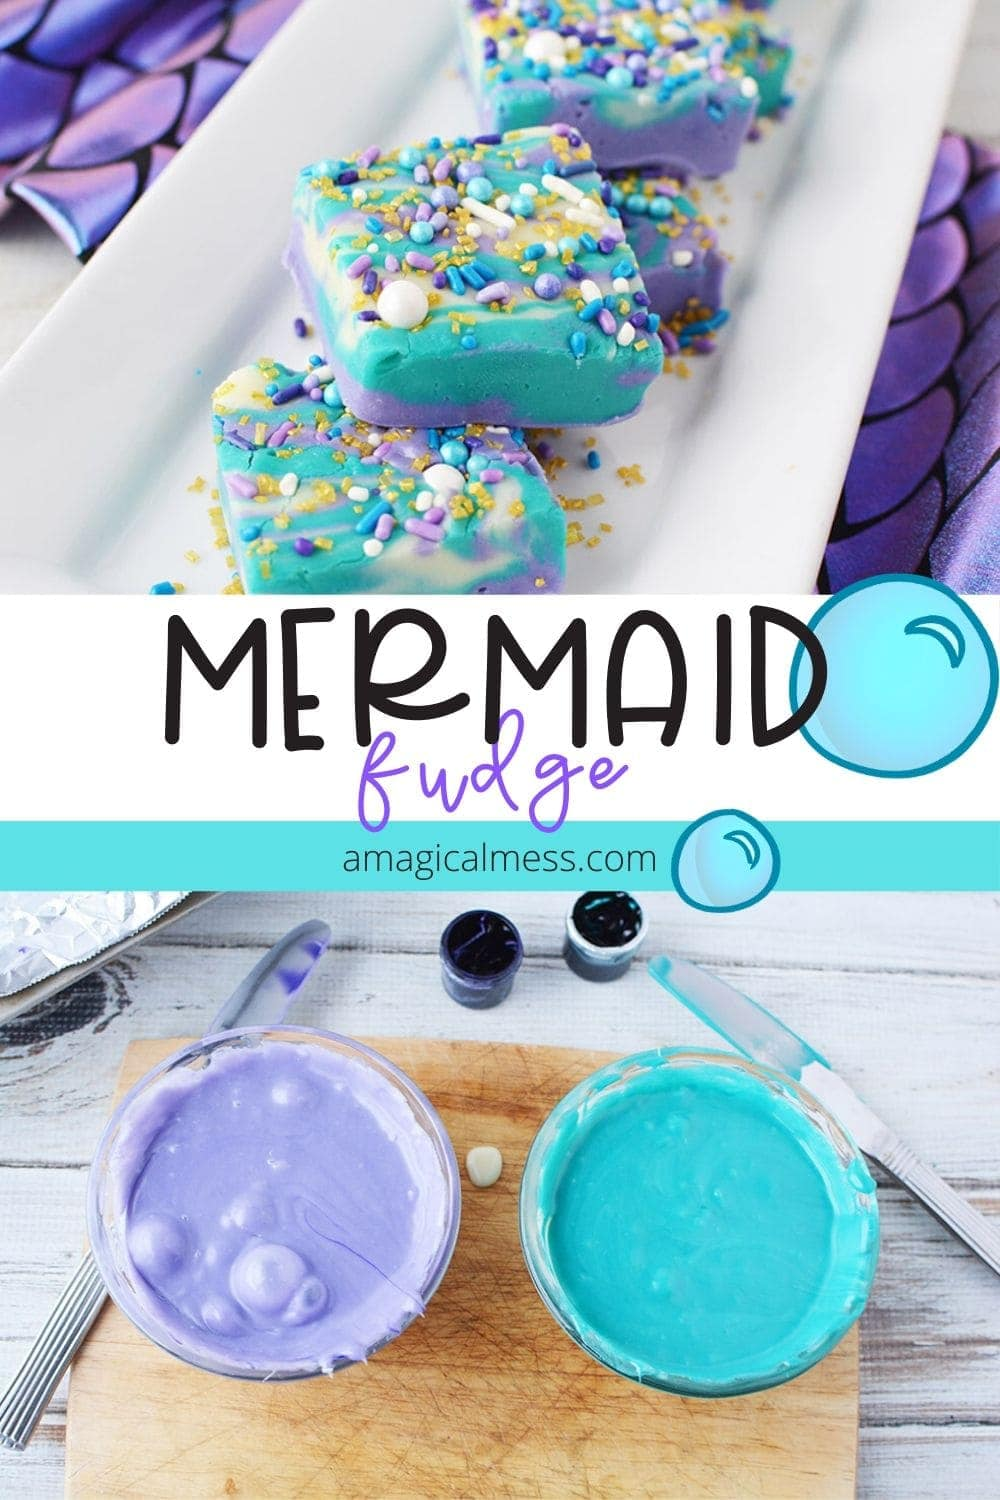 Mermaid candy in bowls and sliced fudge on plate